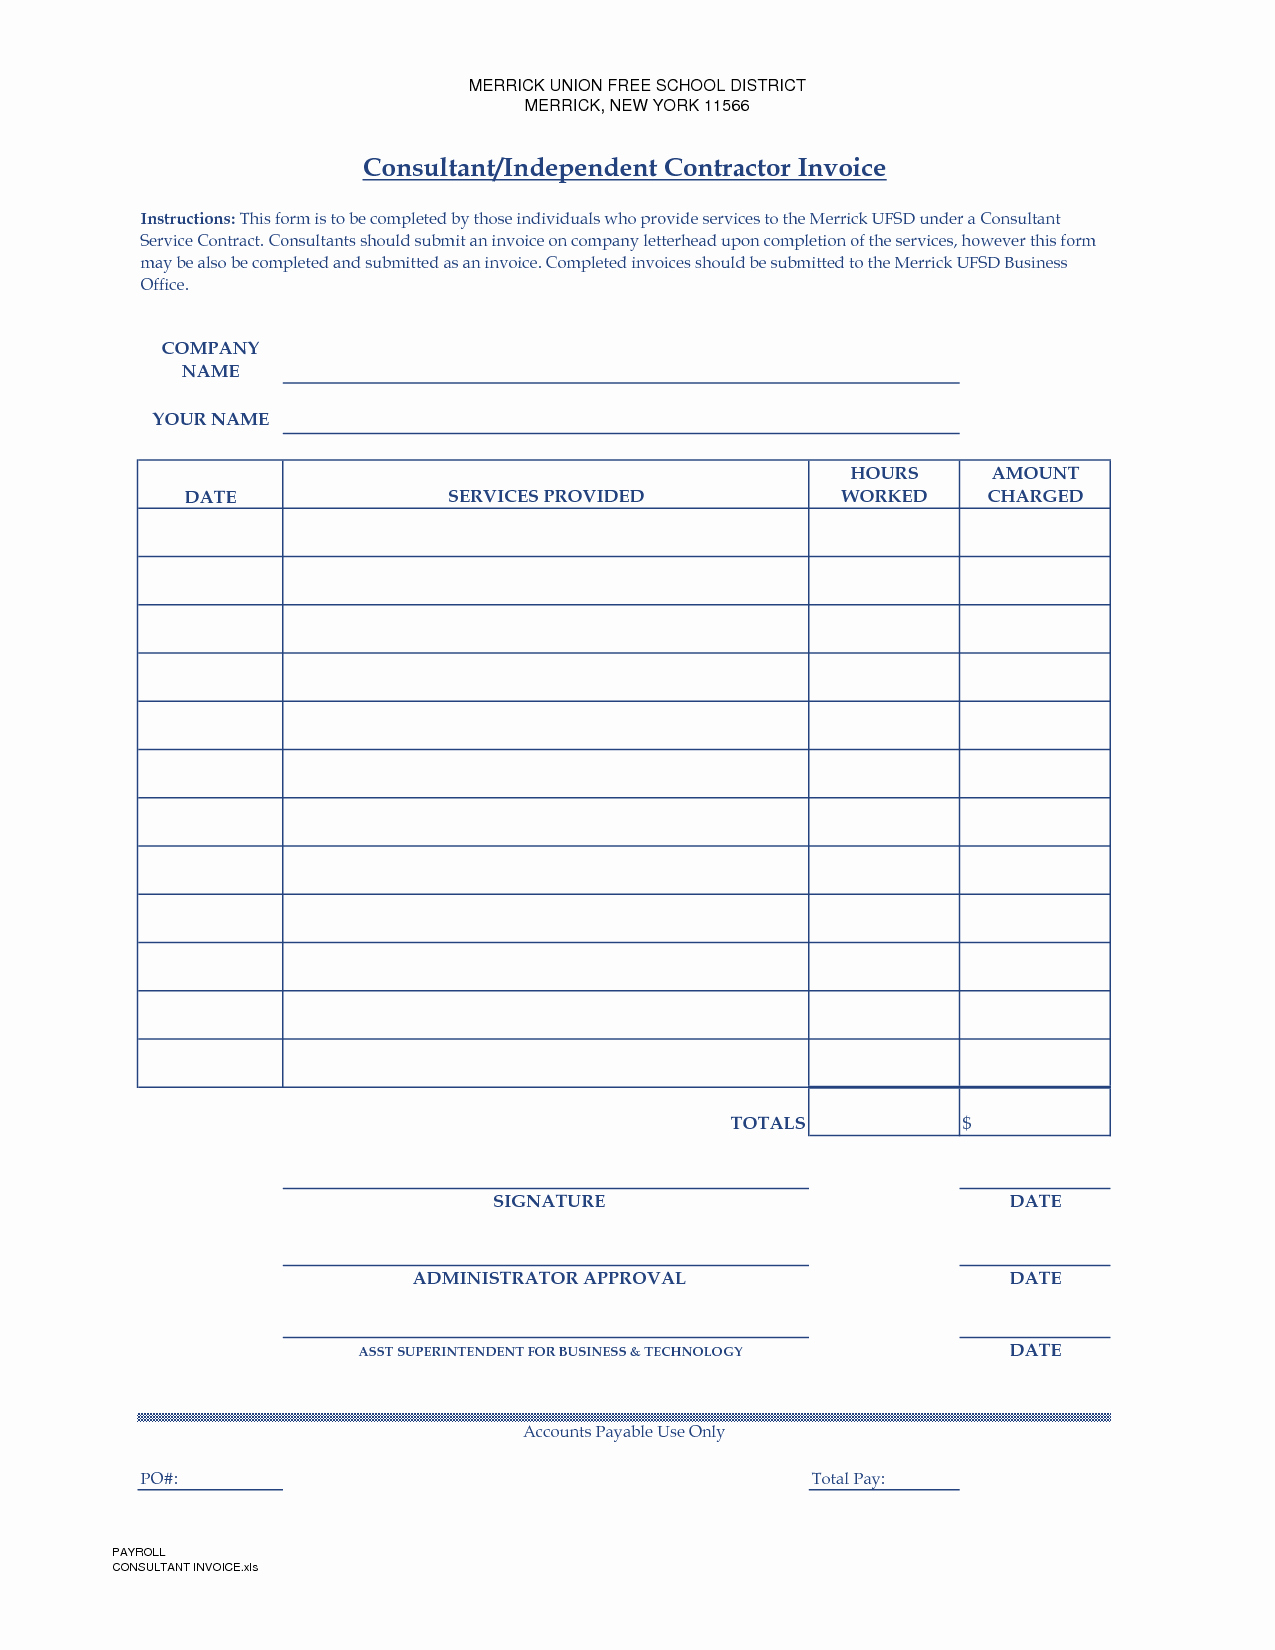 Independent Contractor Invoice Template Free Fresh Independent Contractor Invoice Template Free